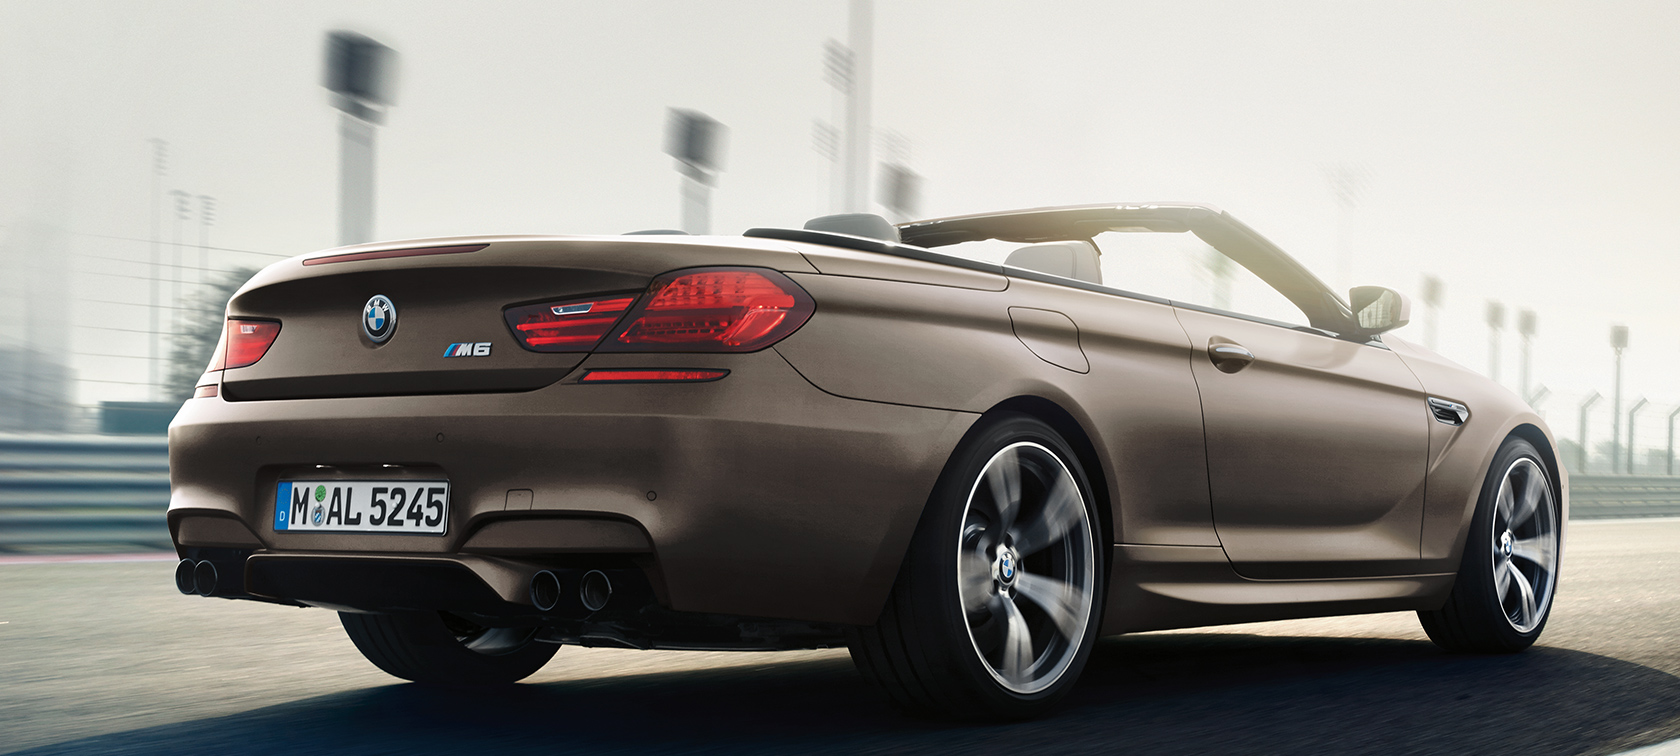 BMW M Series M6 Convertible rear three-quarter rear view in brown metallic color.